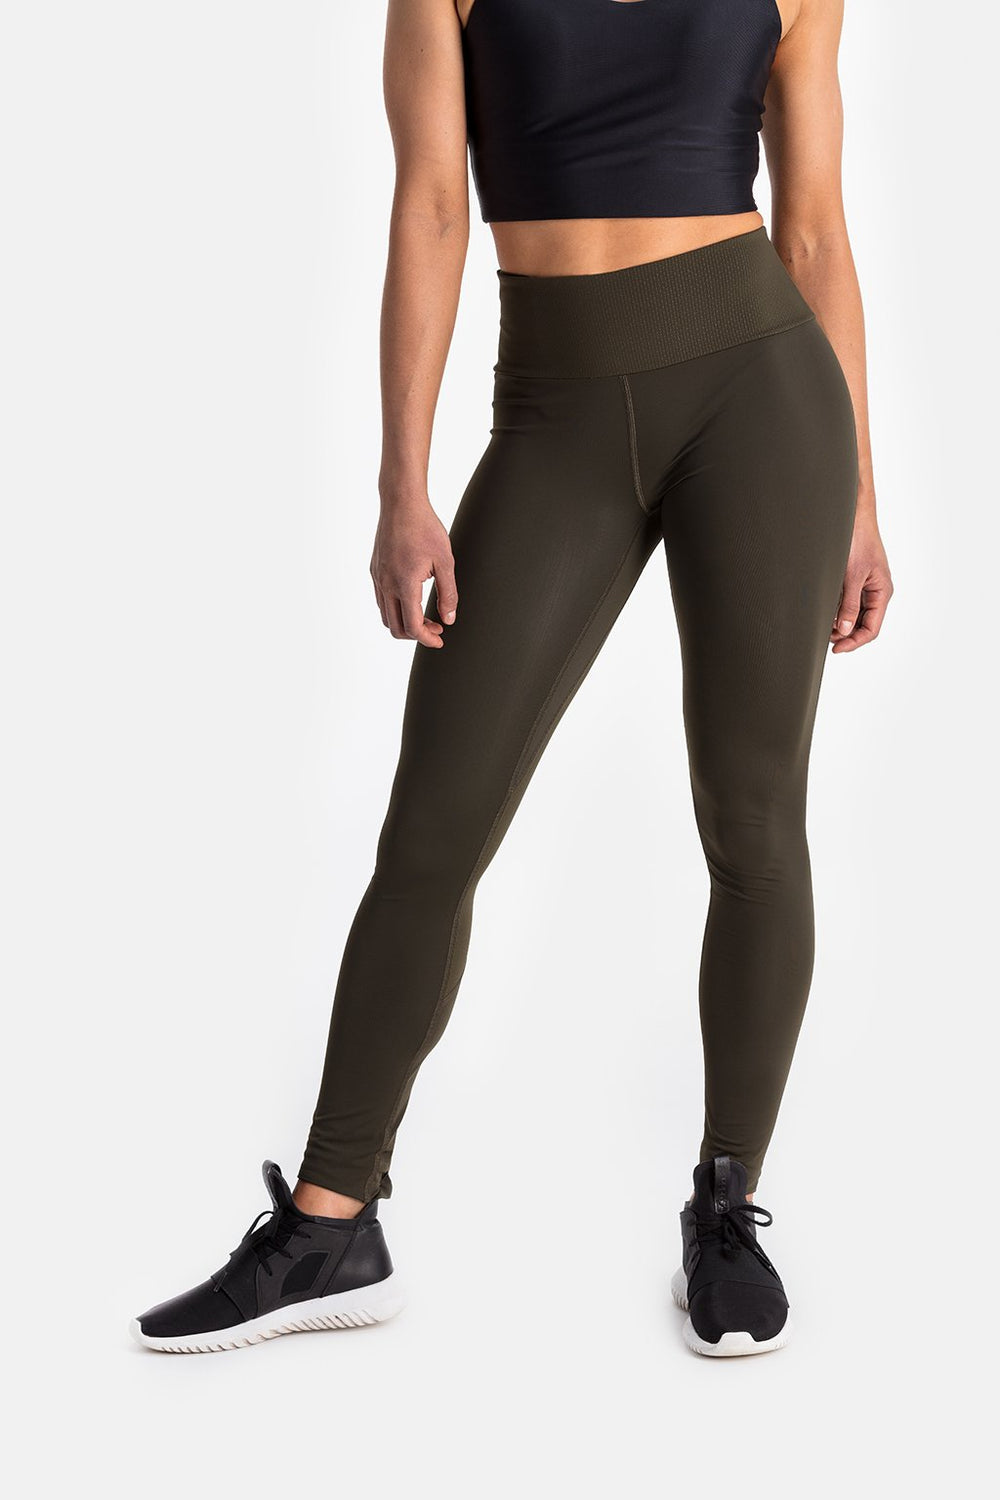 RYU Womens Cardio Tight in Blackened Fatigue